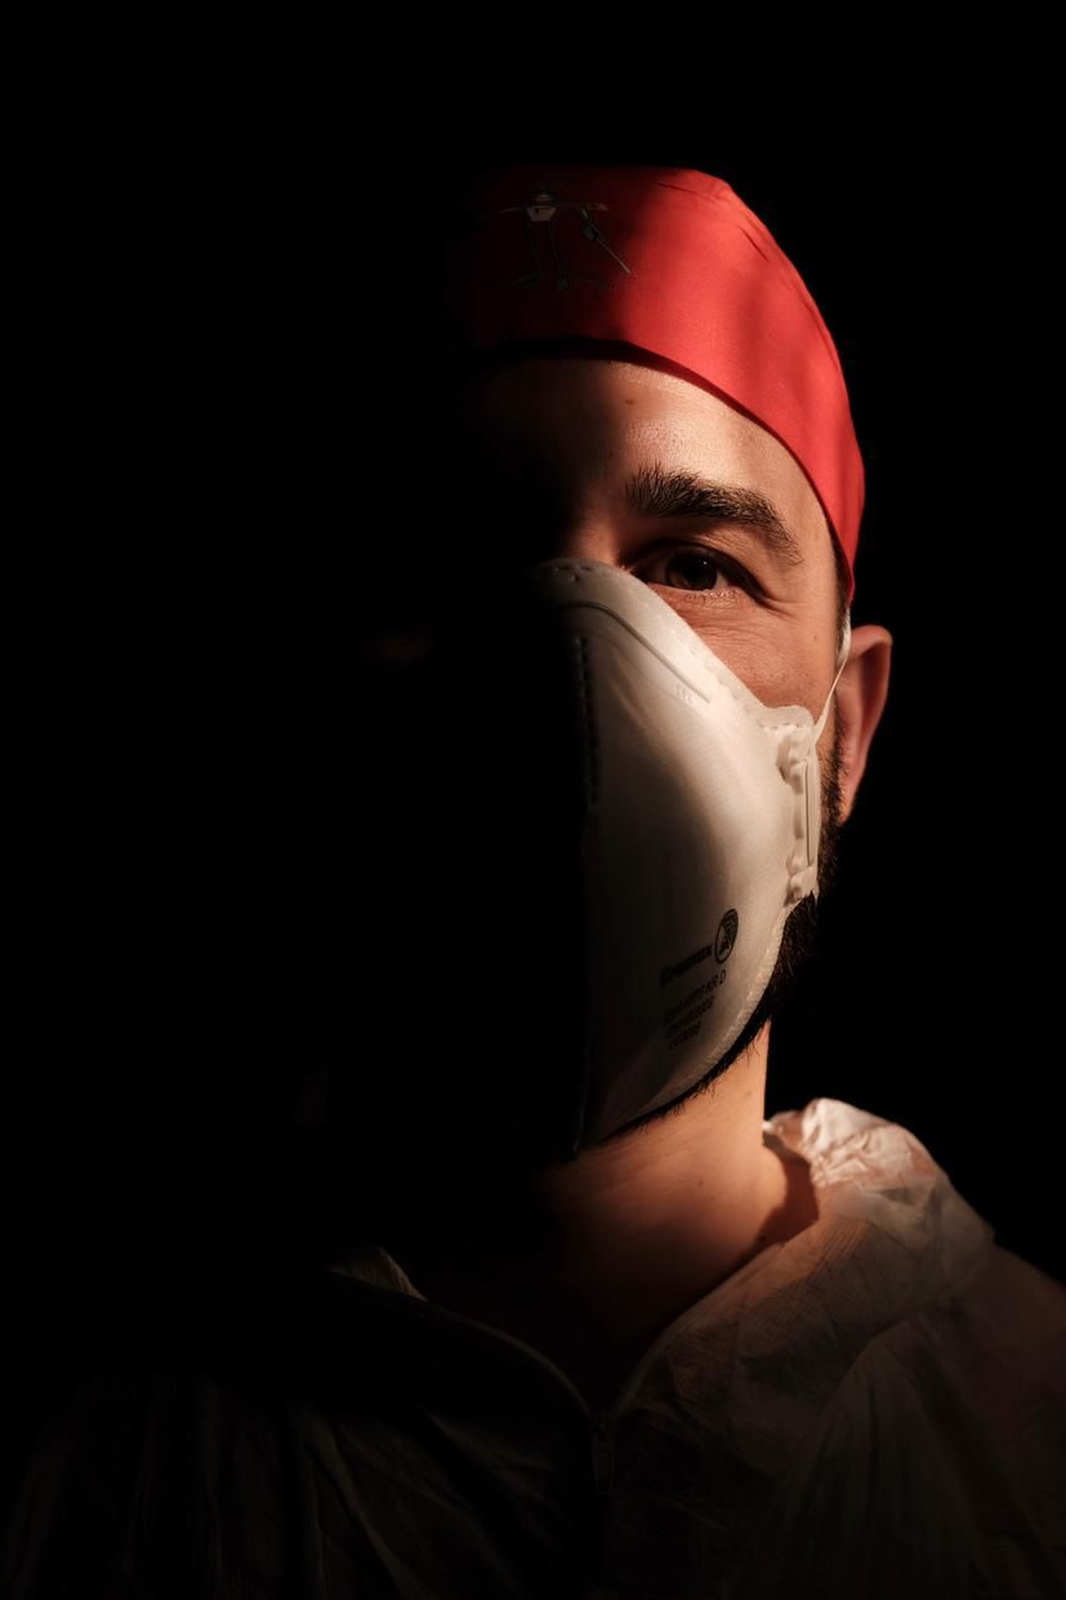 A male nurse wearing a face mask with a dark background behind him.